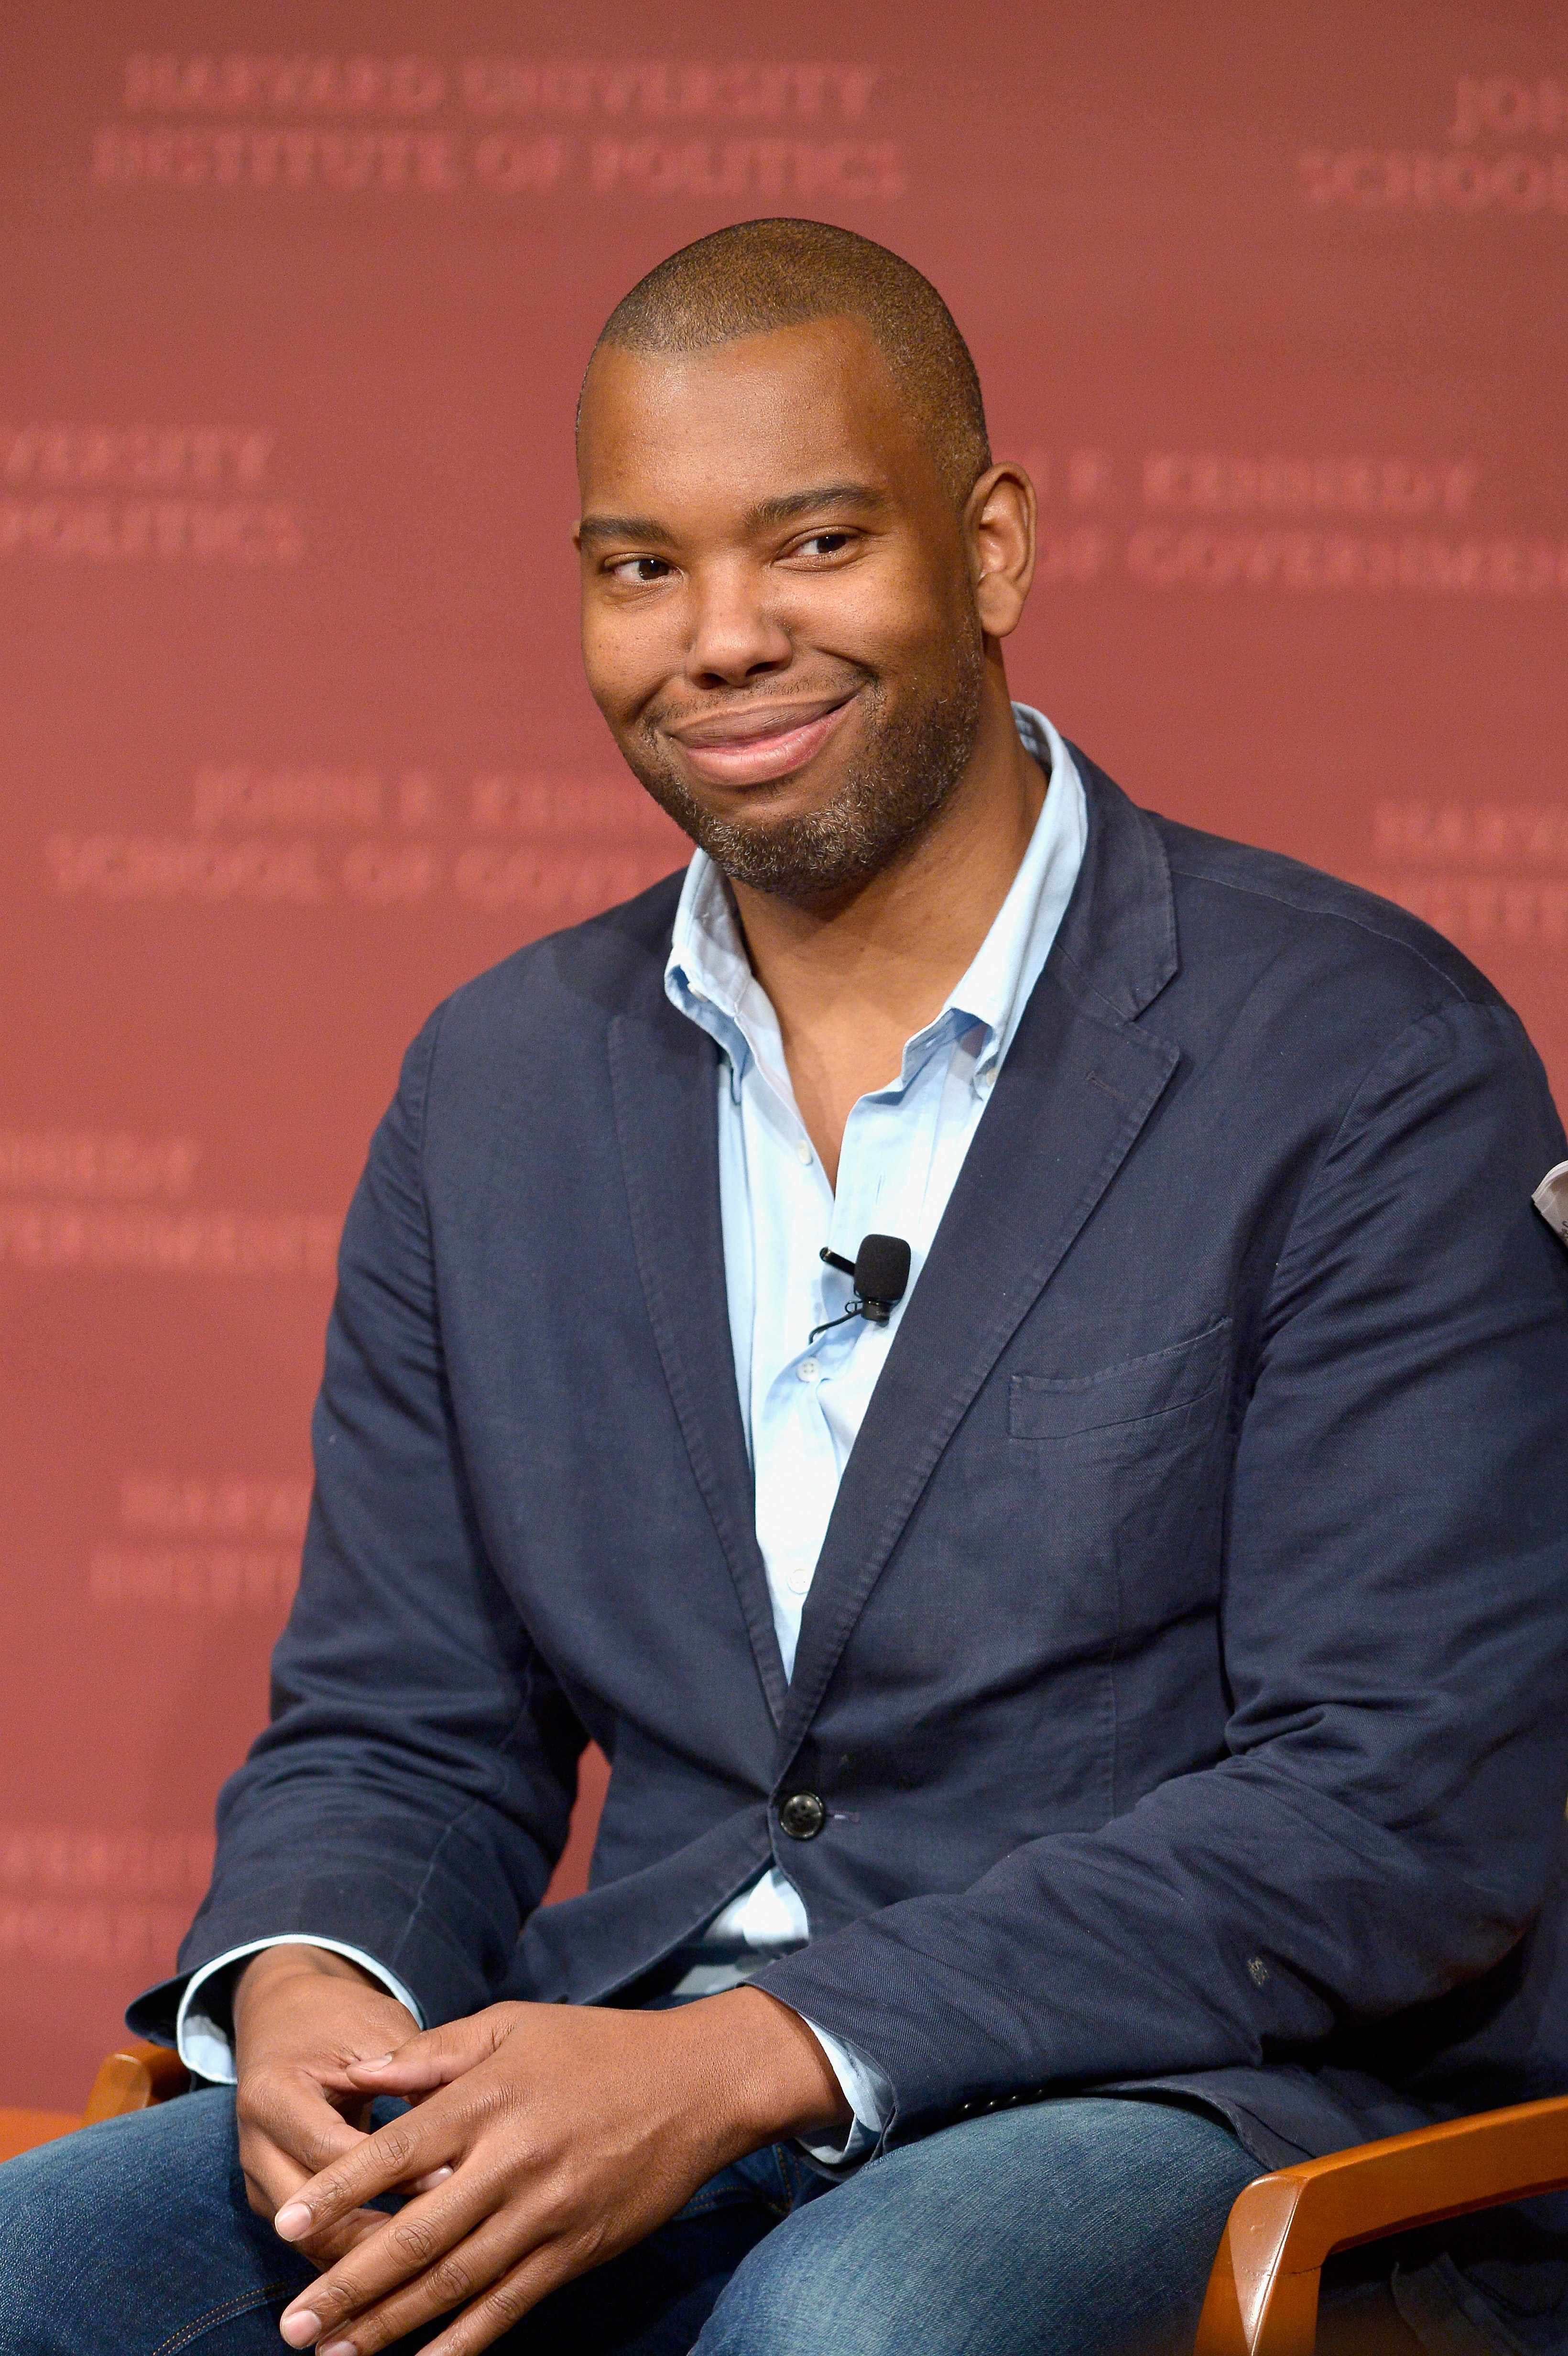 Author Ta-Nehisi Coates speaks at the Harvard University John F. Kennedy School of Government in Cambridge, Mass. on Nov. 11, 2015.